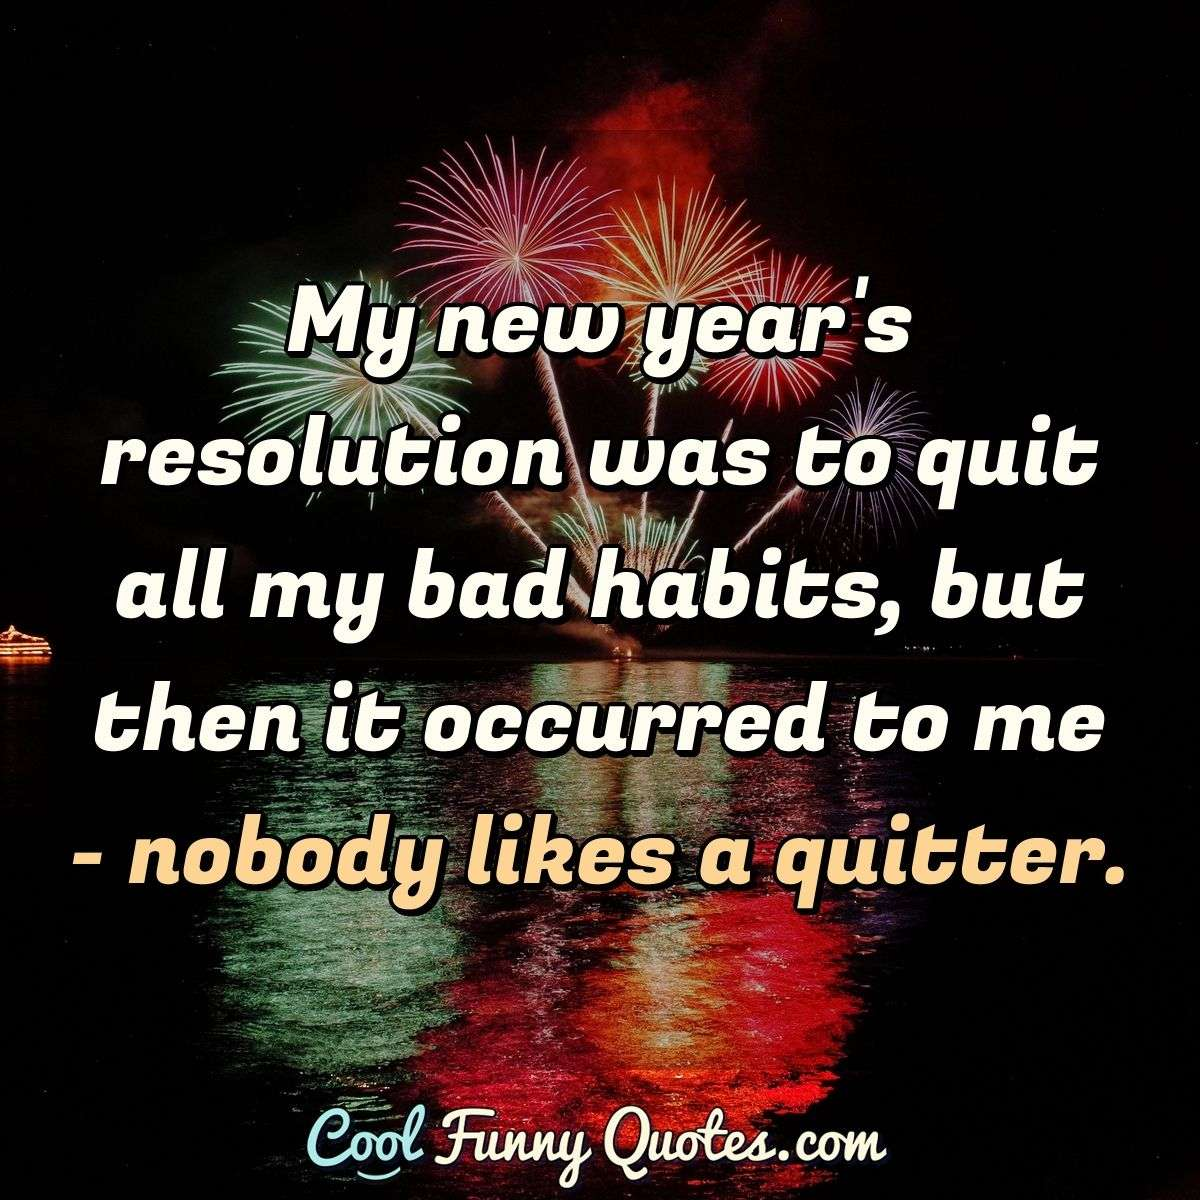 My new year's resolution was to quit all my bad habits, but then it occurred to me - nobody likes a quitter. - Anonymous